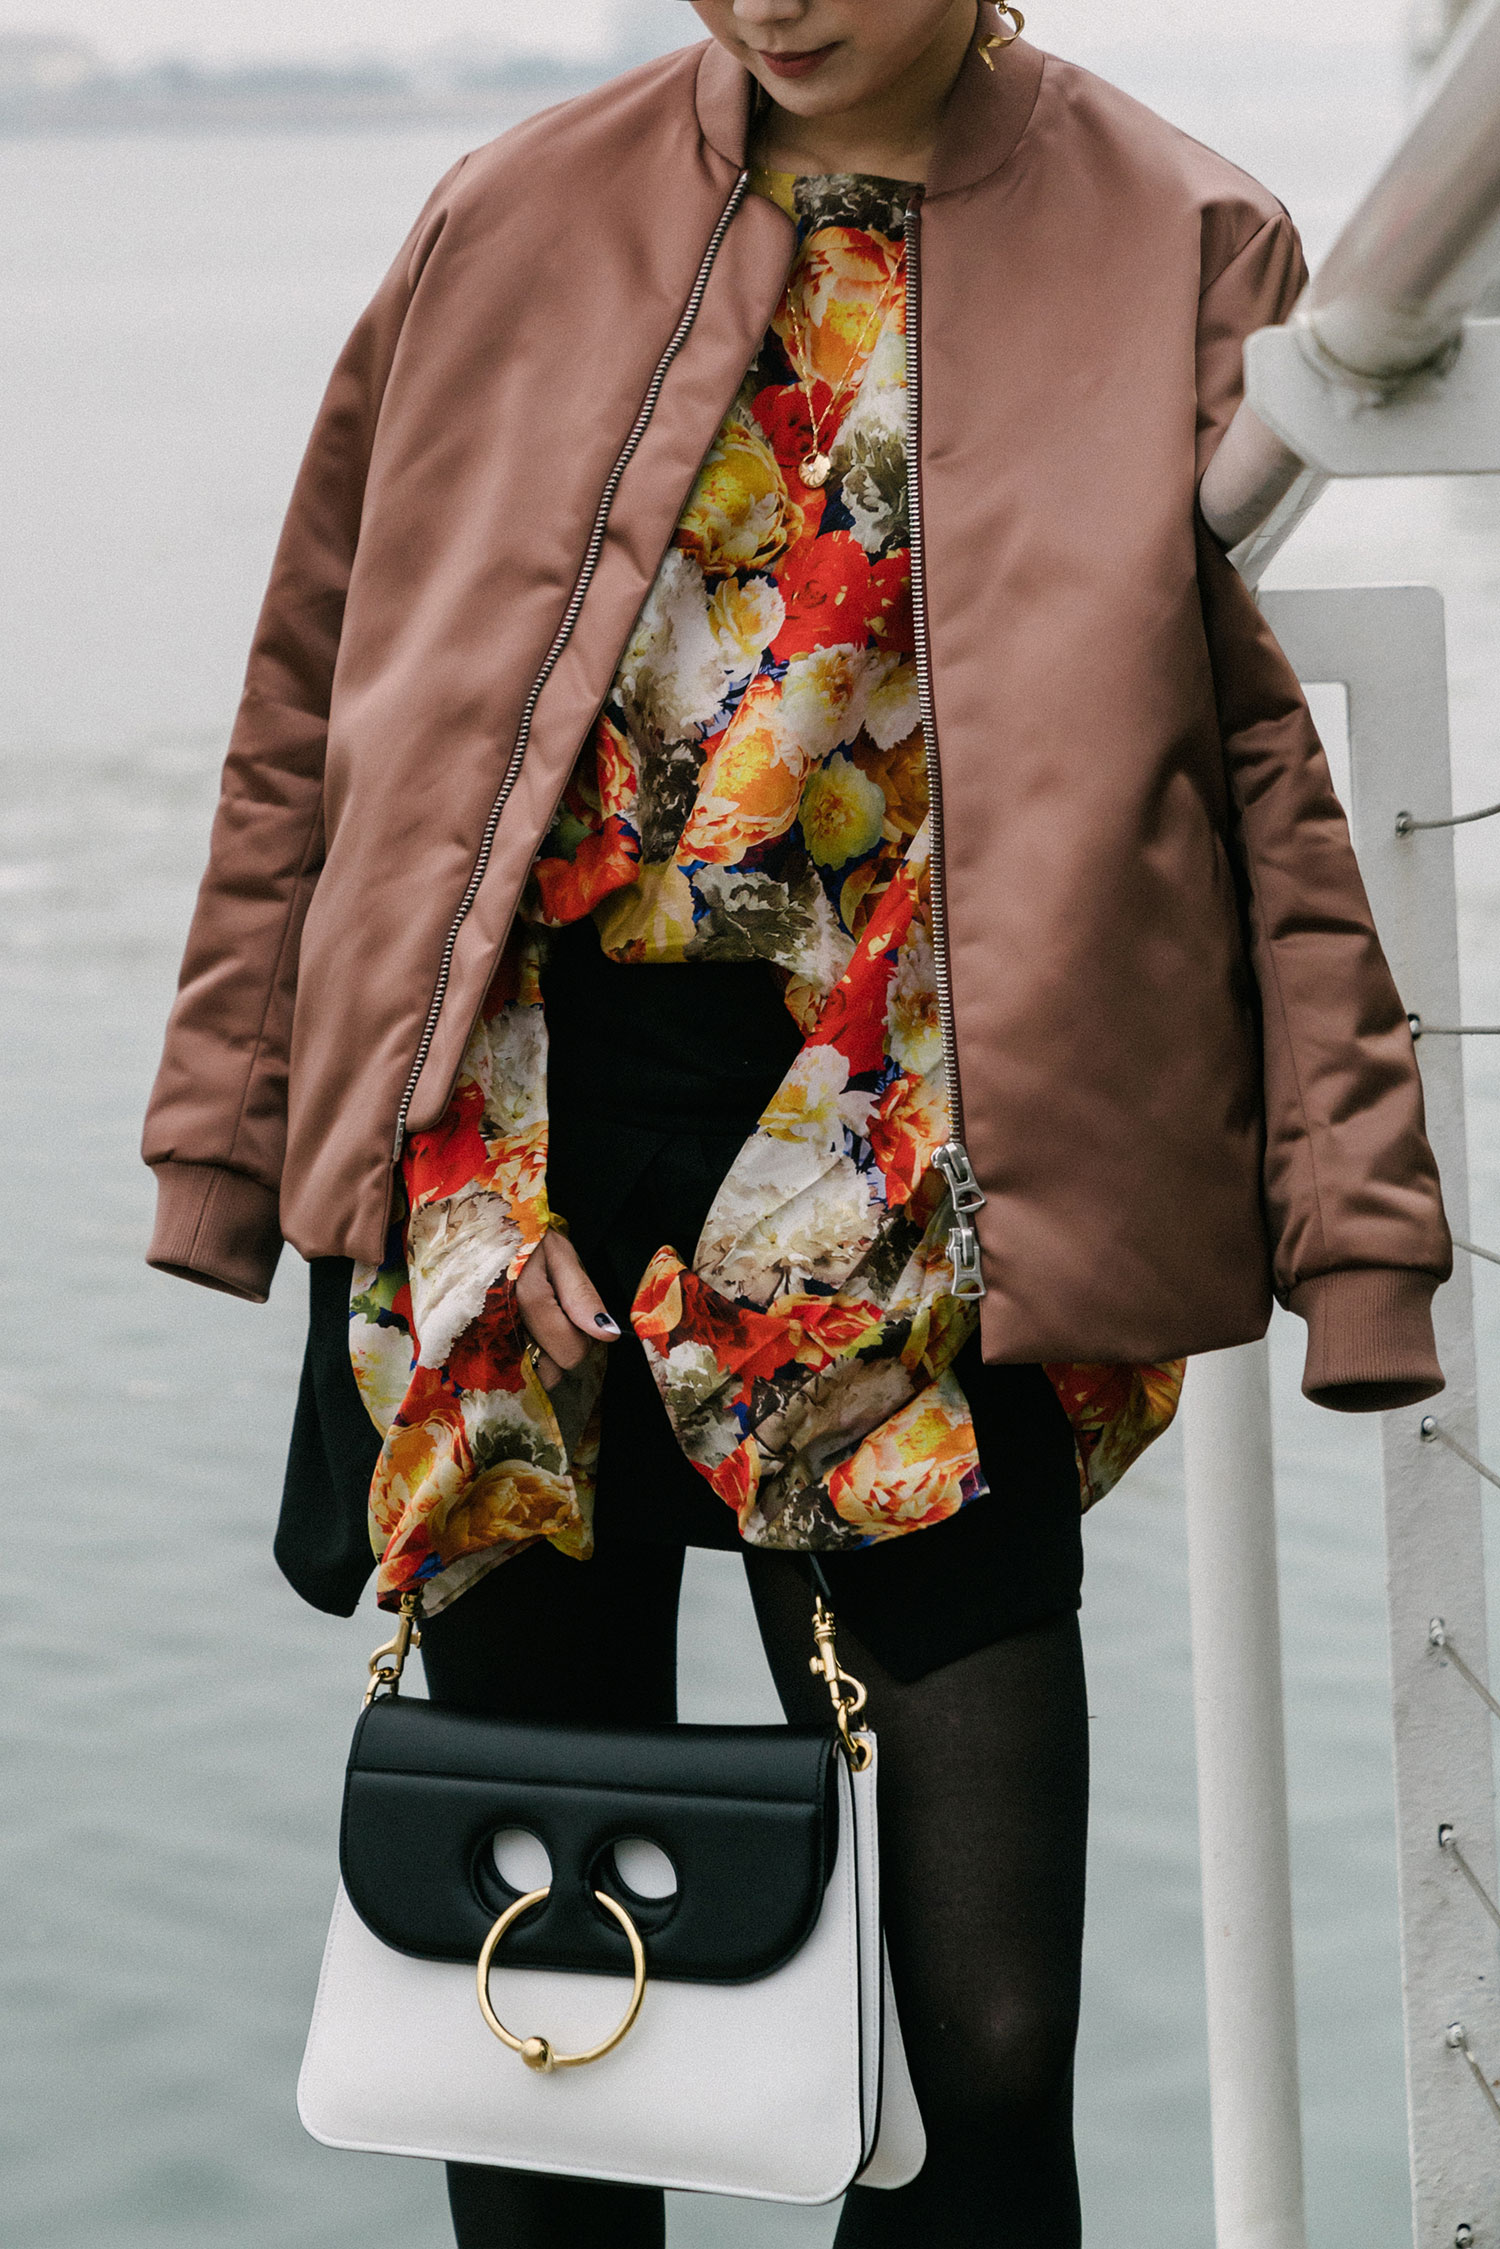 Acne Studios Jacket and  Top , Isabel Marant Skirt,  Vince Shoes ,  J.W. Anderson Bag  and Earring, Celine Sunglasses